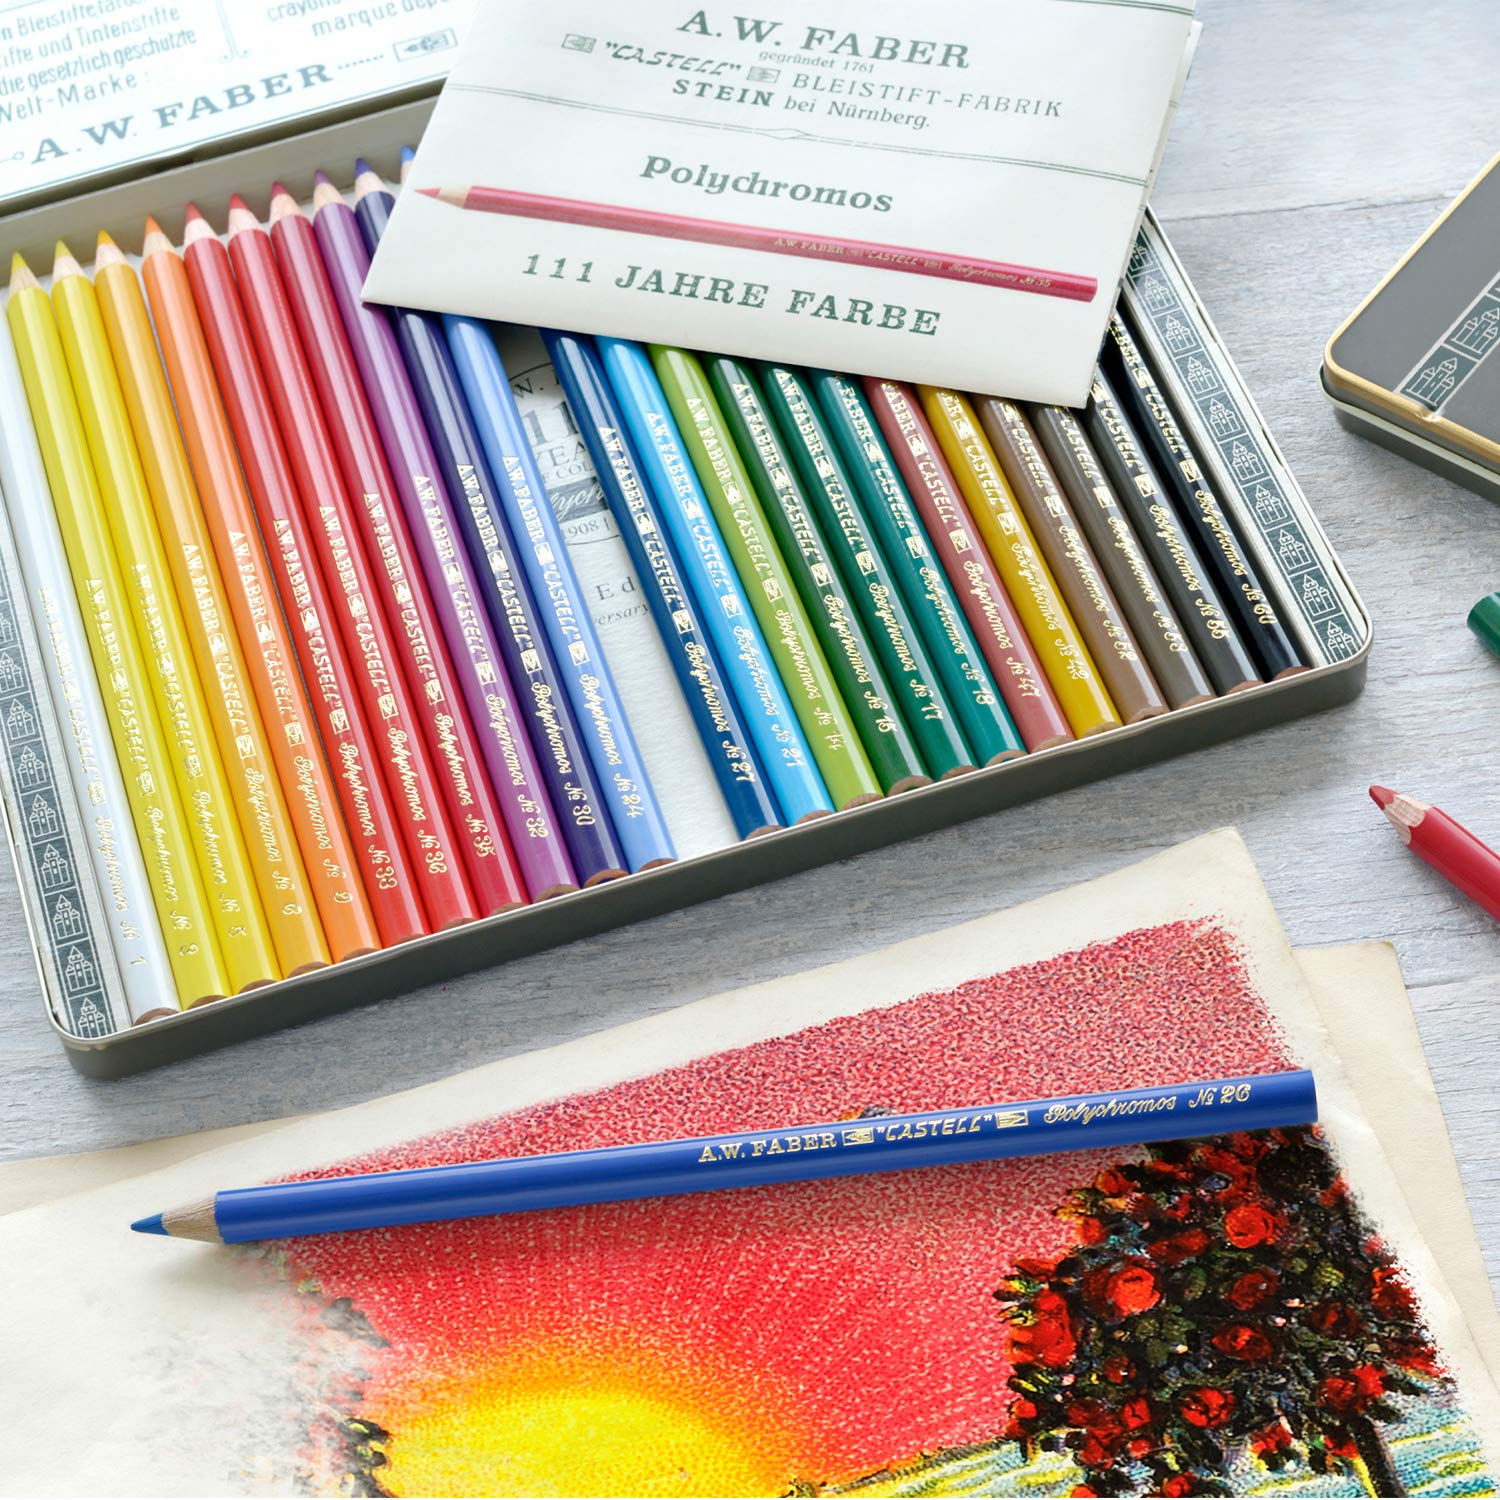 Faber-Castell Polychromos 111th Anniversary Limited Edition Wood Colored Pencil Tin - 12 Colors by Faber-Castell (Image #6)